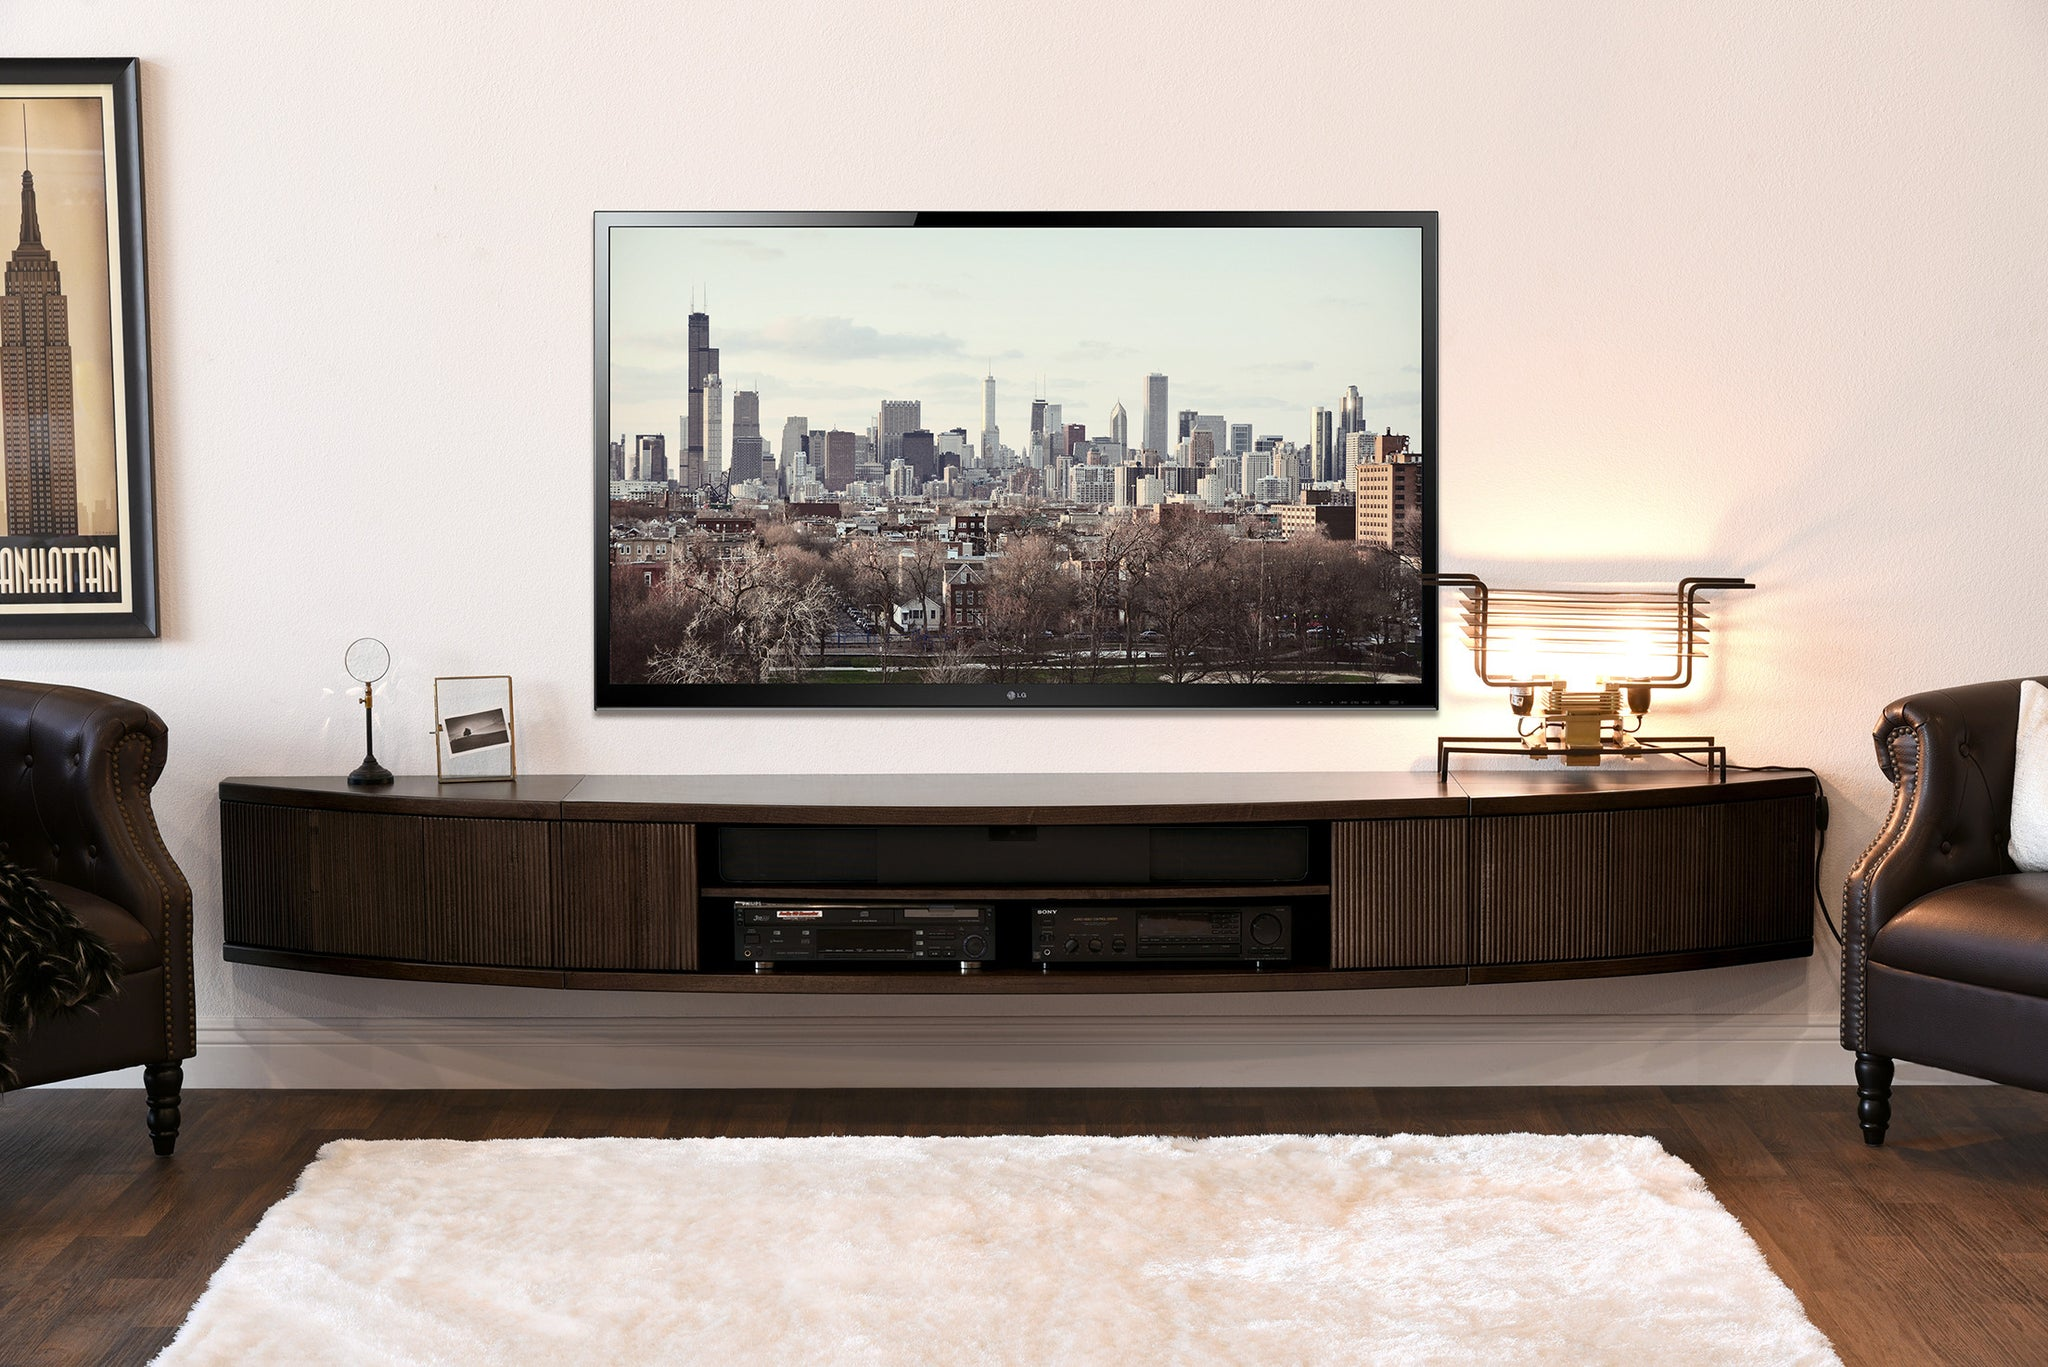 Industrial Modern Curved Floating TV Stand Wall Mount Entertainment Center Arc Espresso 2048x